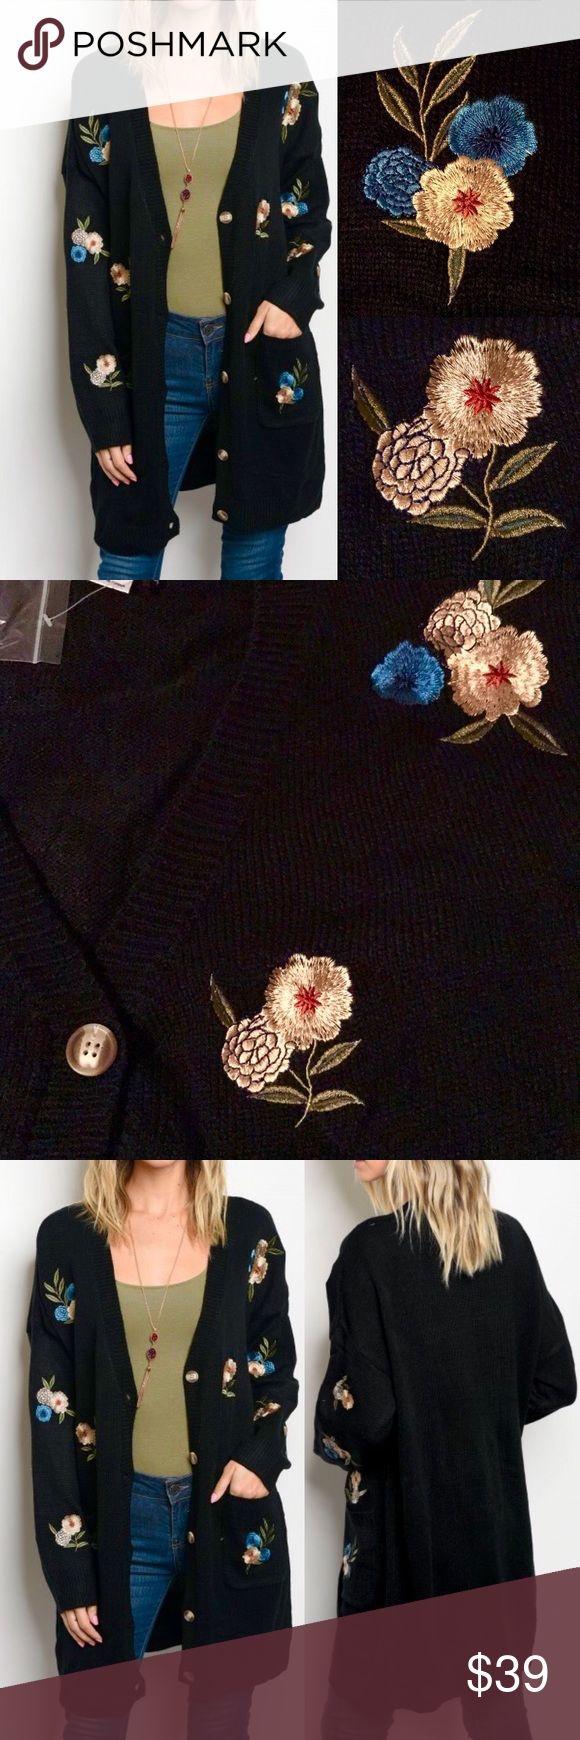 "☀️NEW☀️Classy Embroidered Cardigan black Front pockets. Button down. Soft. Measurements on size small are 21"" across bust, 30 1/2"" length. As with all merchandise, seller not responsible for fit nor comfort. Brand new boutique retail w/o tag. No trades, no off App transactions.  ❗️PRICE IS FIRM UNLESS BUNDLED❗️ Sweaters Cardigans"